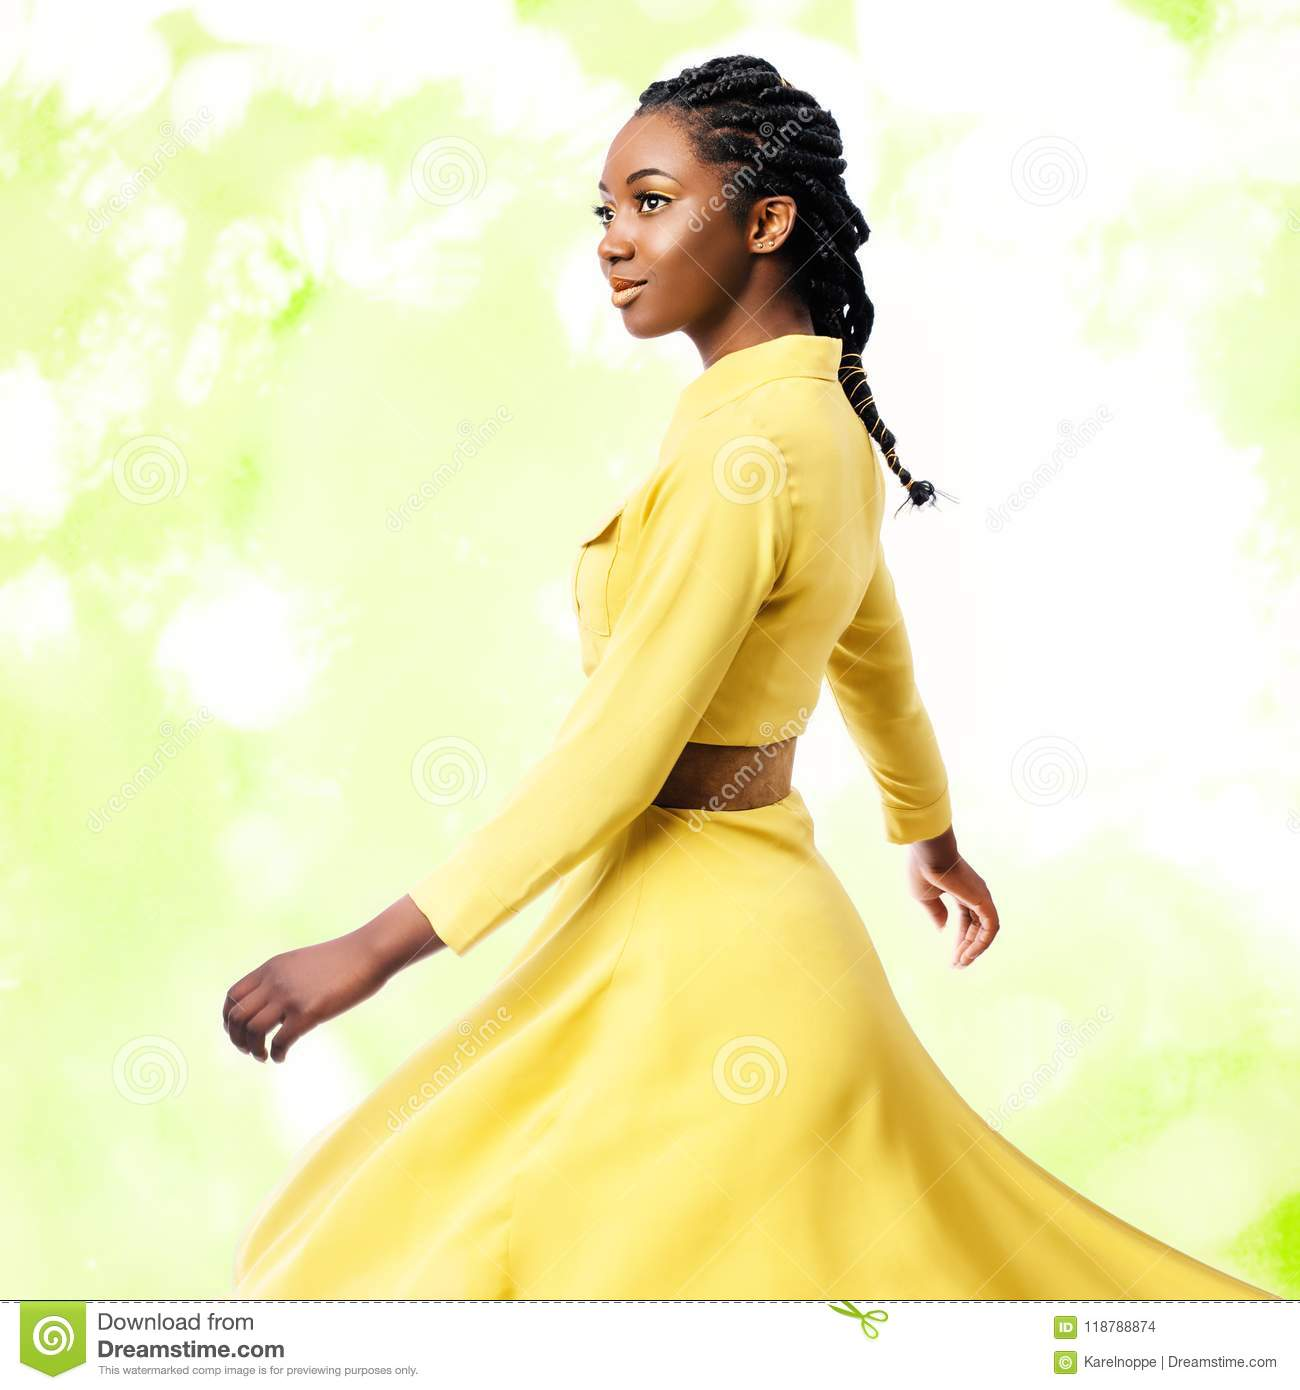 Download Studio Portrait Of African Woman In Yellow Dress. Stock Photo - Image of glamour, female: 118788874